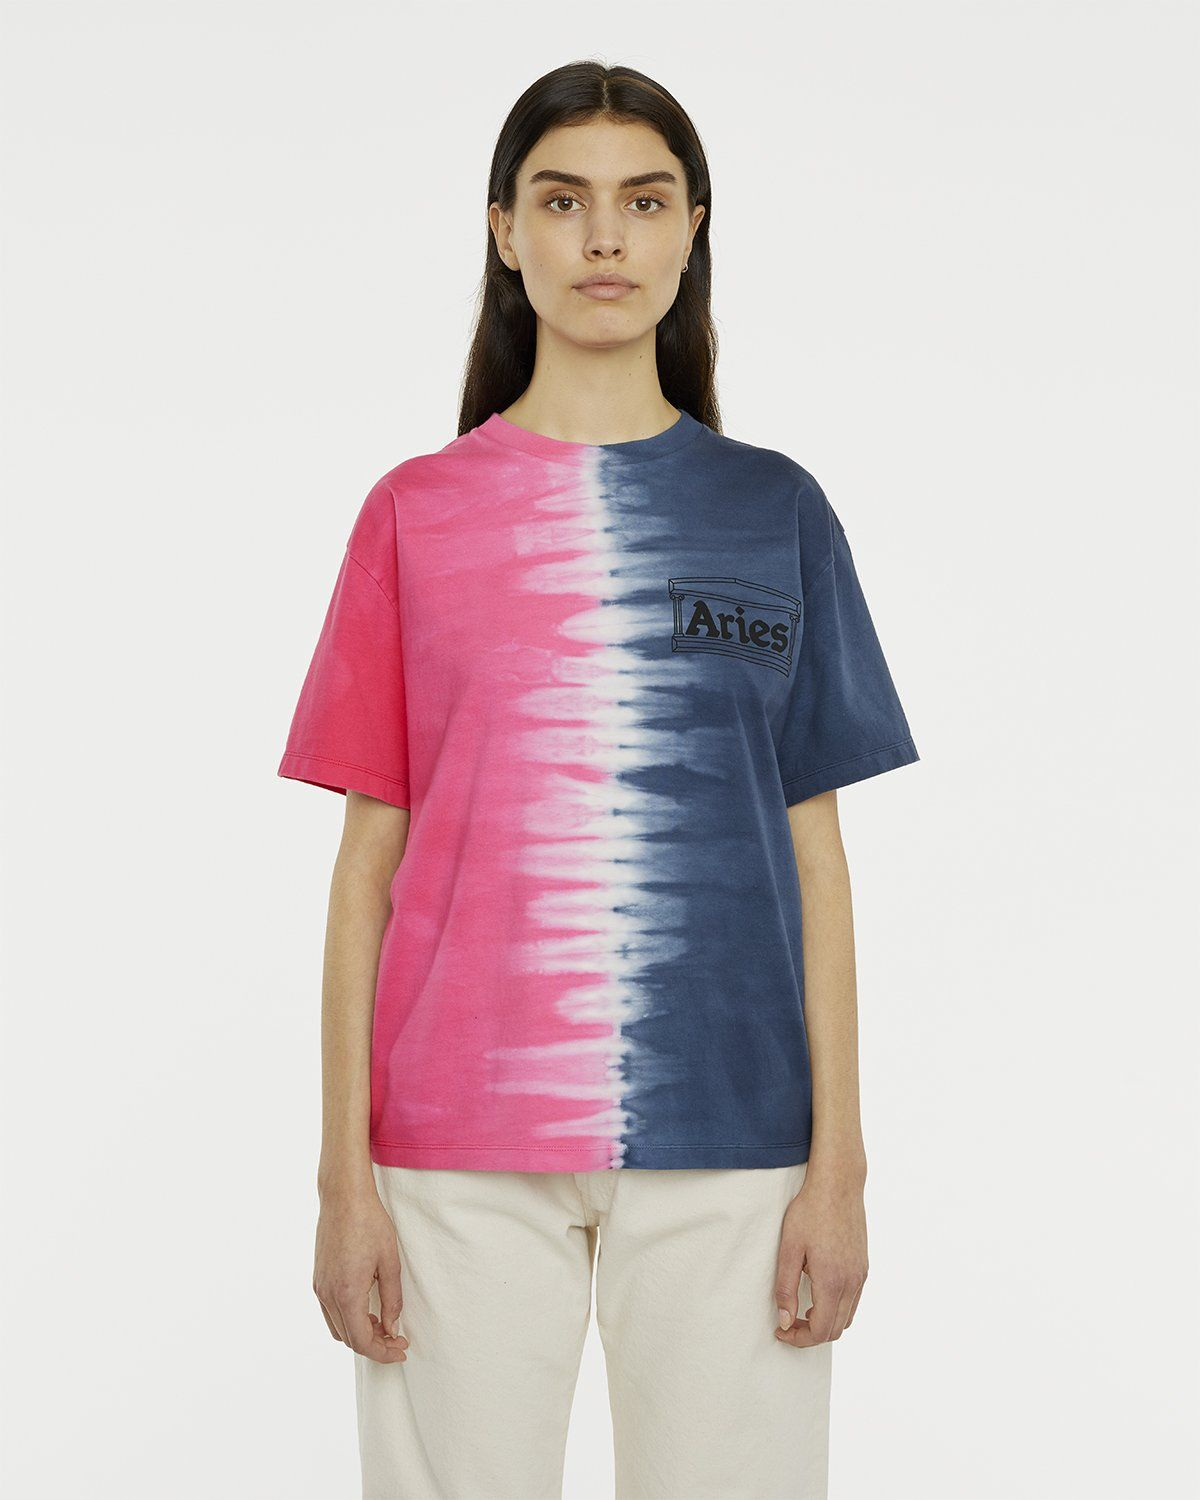 Aries - Tie Dye Half and Half Tee Blue/Fuchsia - Image 4